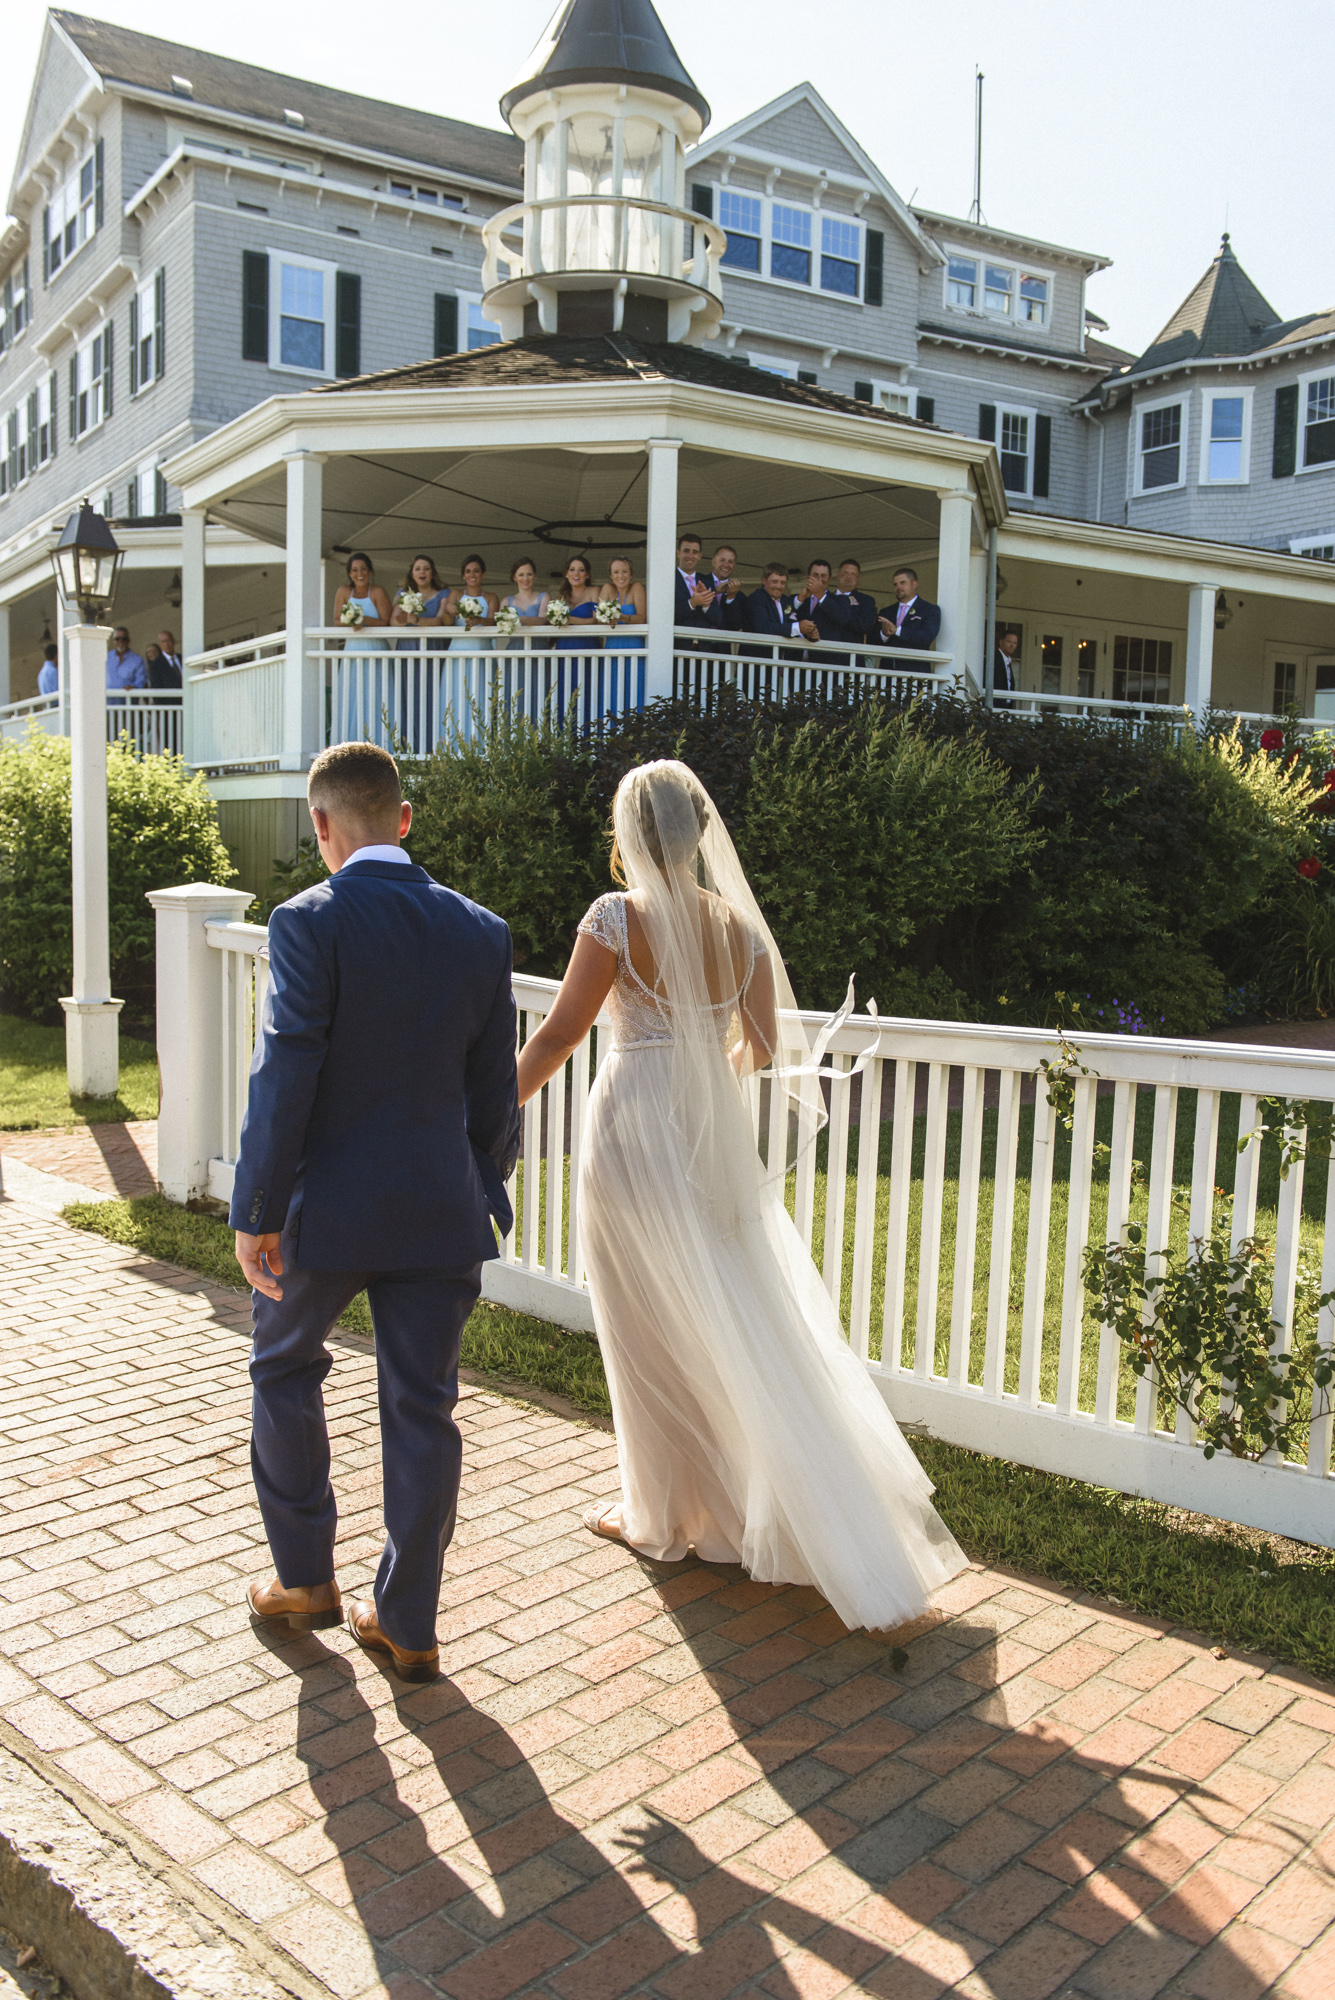 A bride and groom approach the Harbor View Hotel photo by David Welch Photography